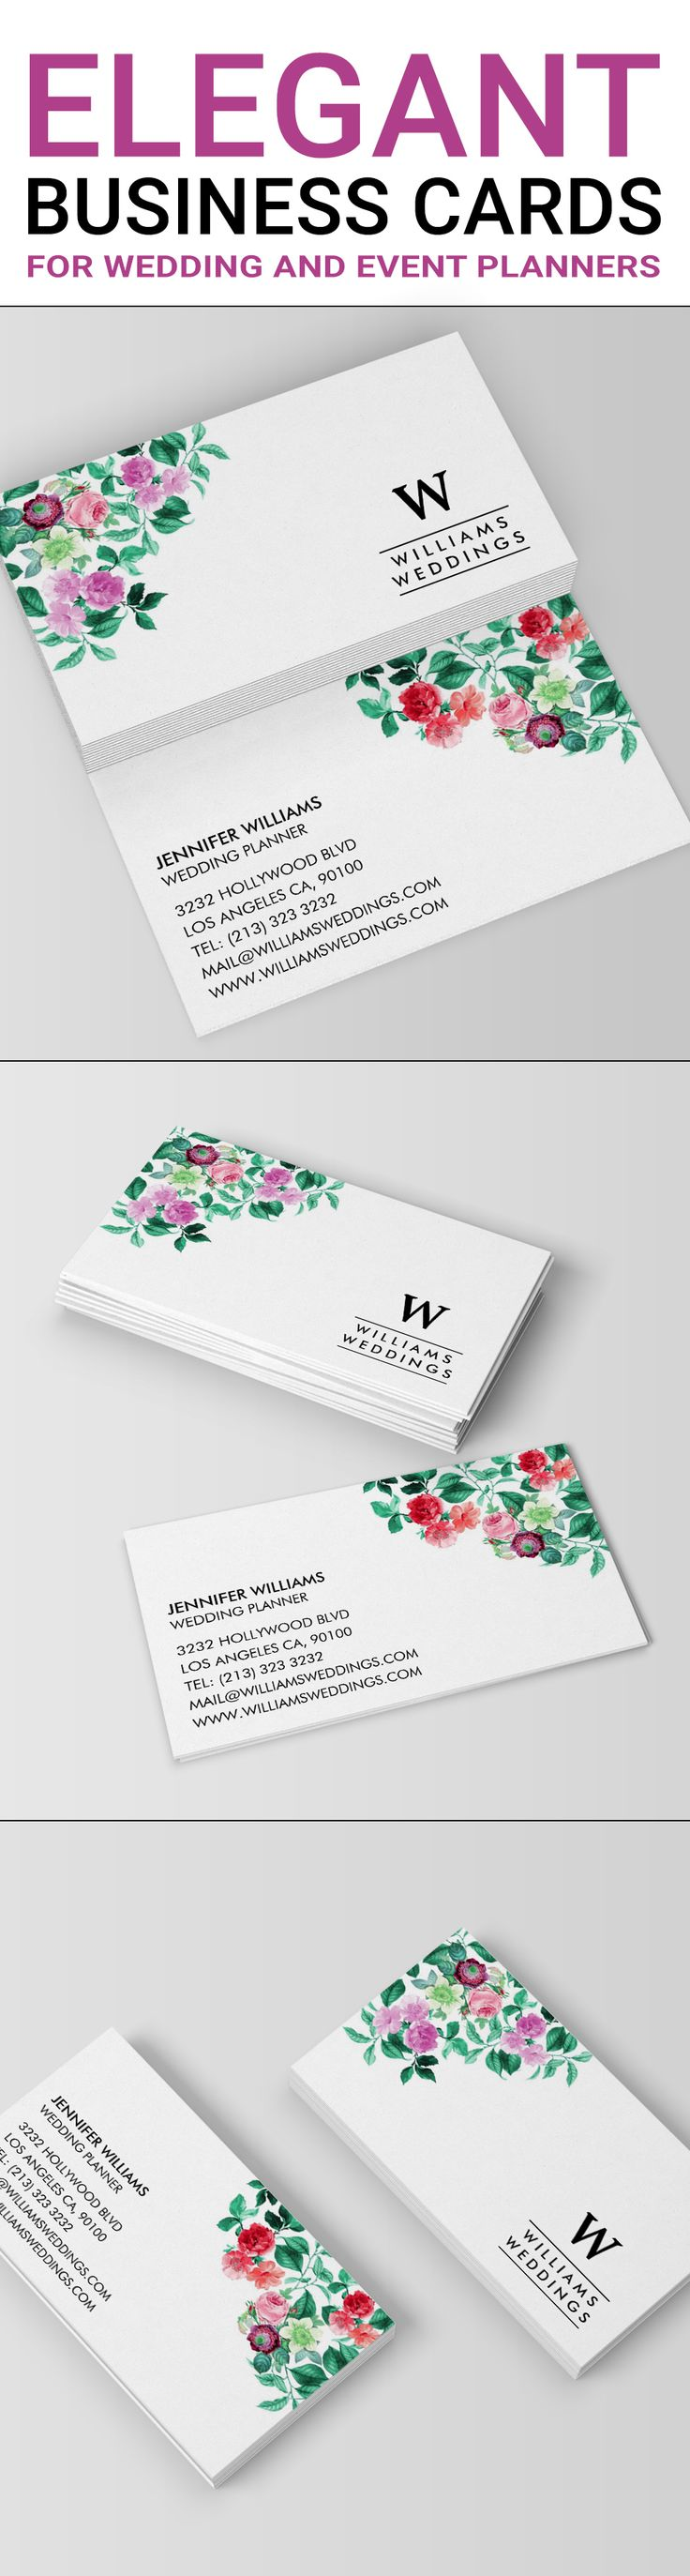 366 best business card showcase images on pinterest business card elegant business cards for wedding planners and event planners the floral business card design feature reheart Image collections